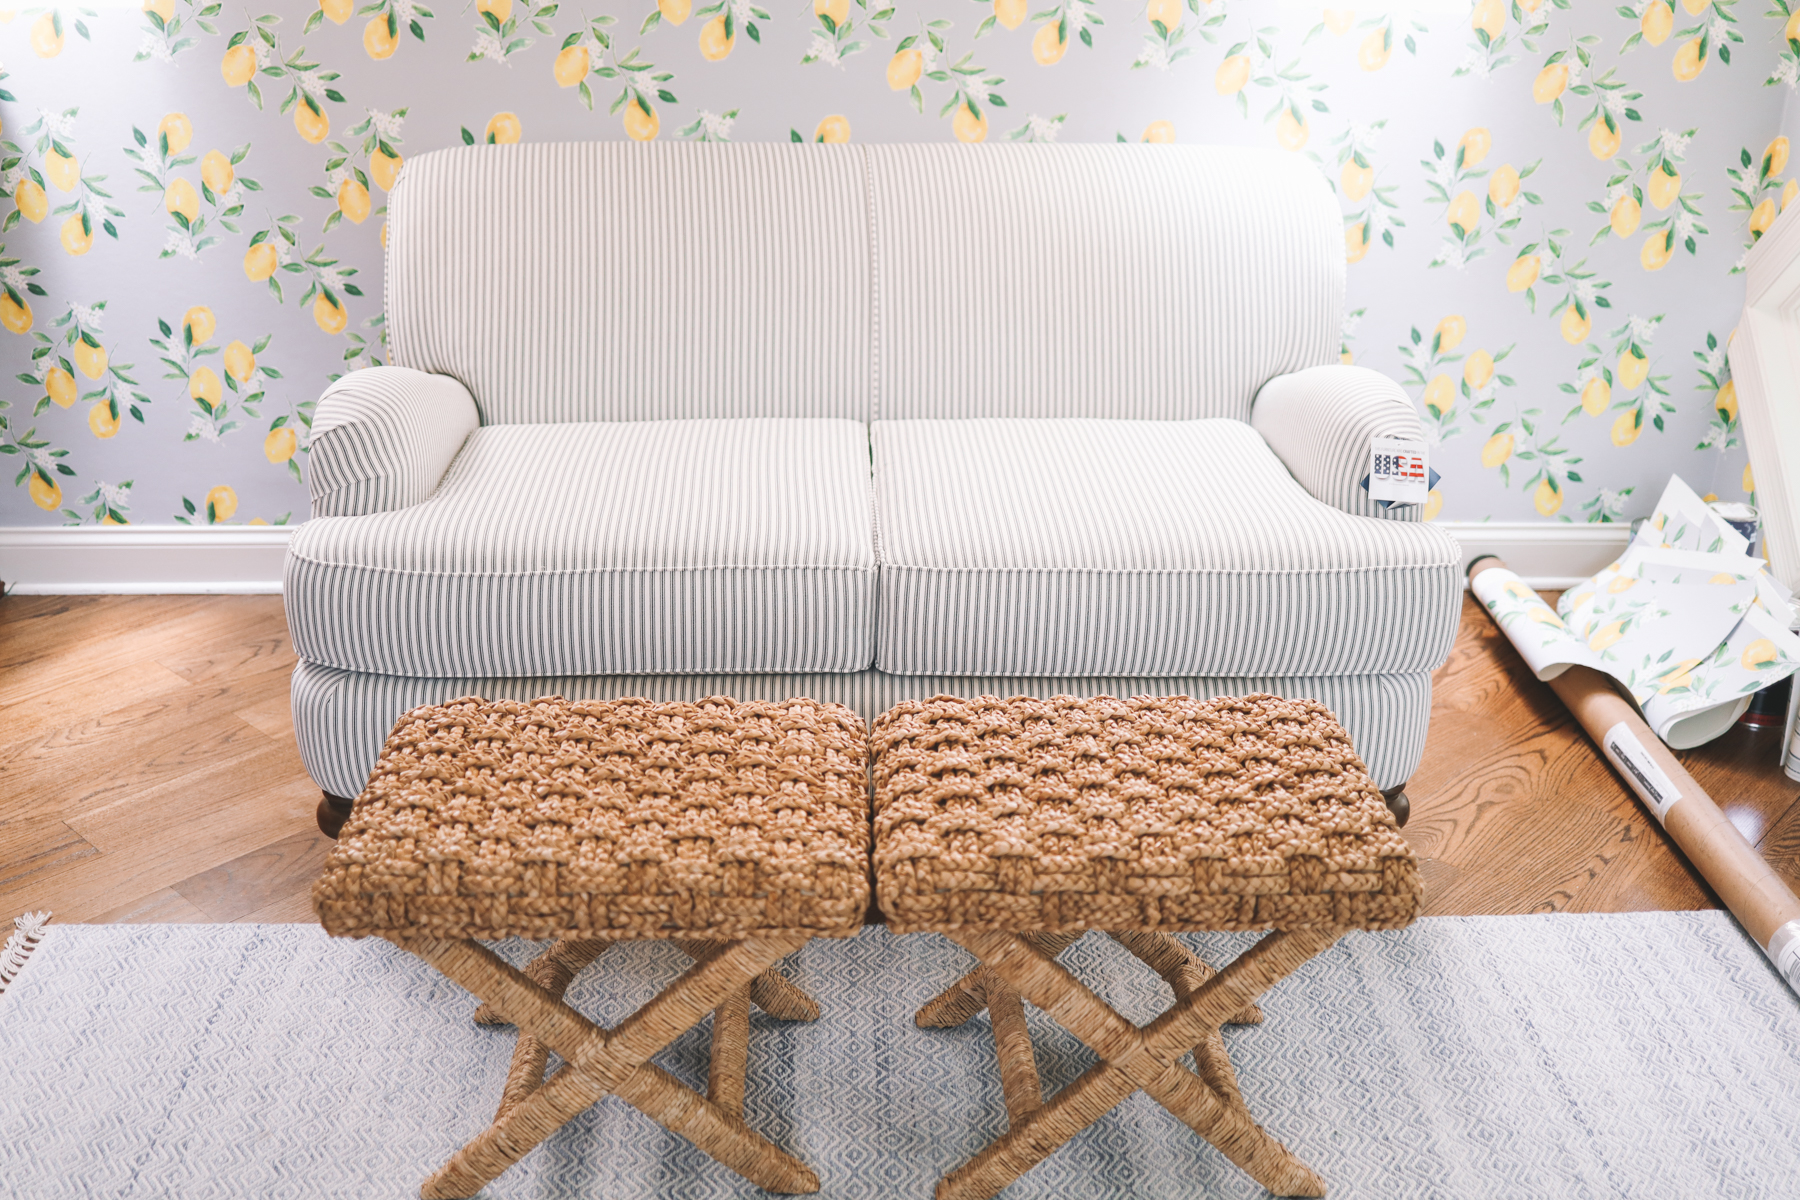 A shot of the custom striped loveseat for under $600